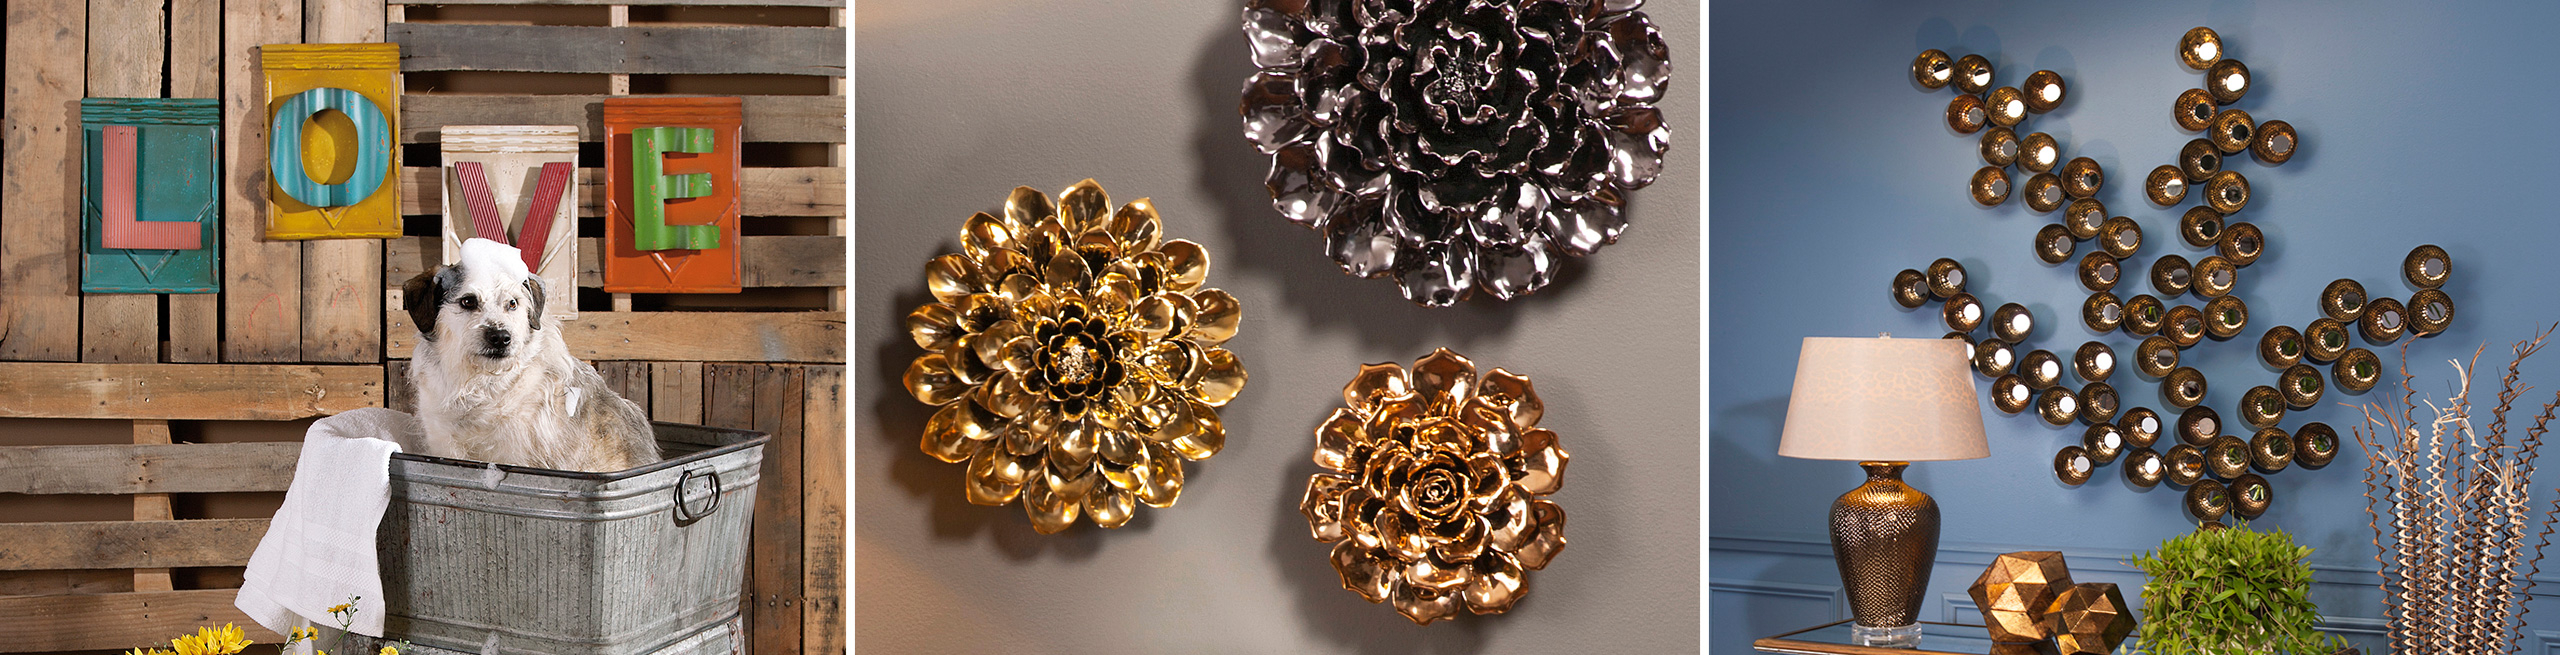 3 Piece Ceramic Flowers Wall Decor Sets Regarding Most Current Outdoor Wall Decor (Gallery 19 of 20)